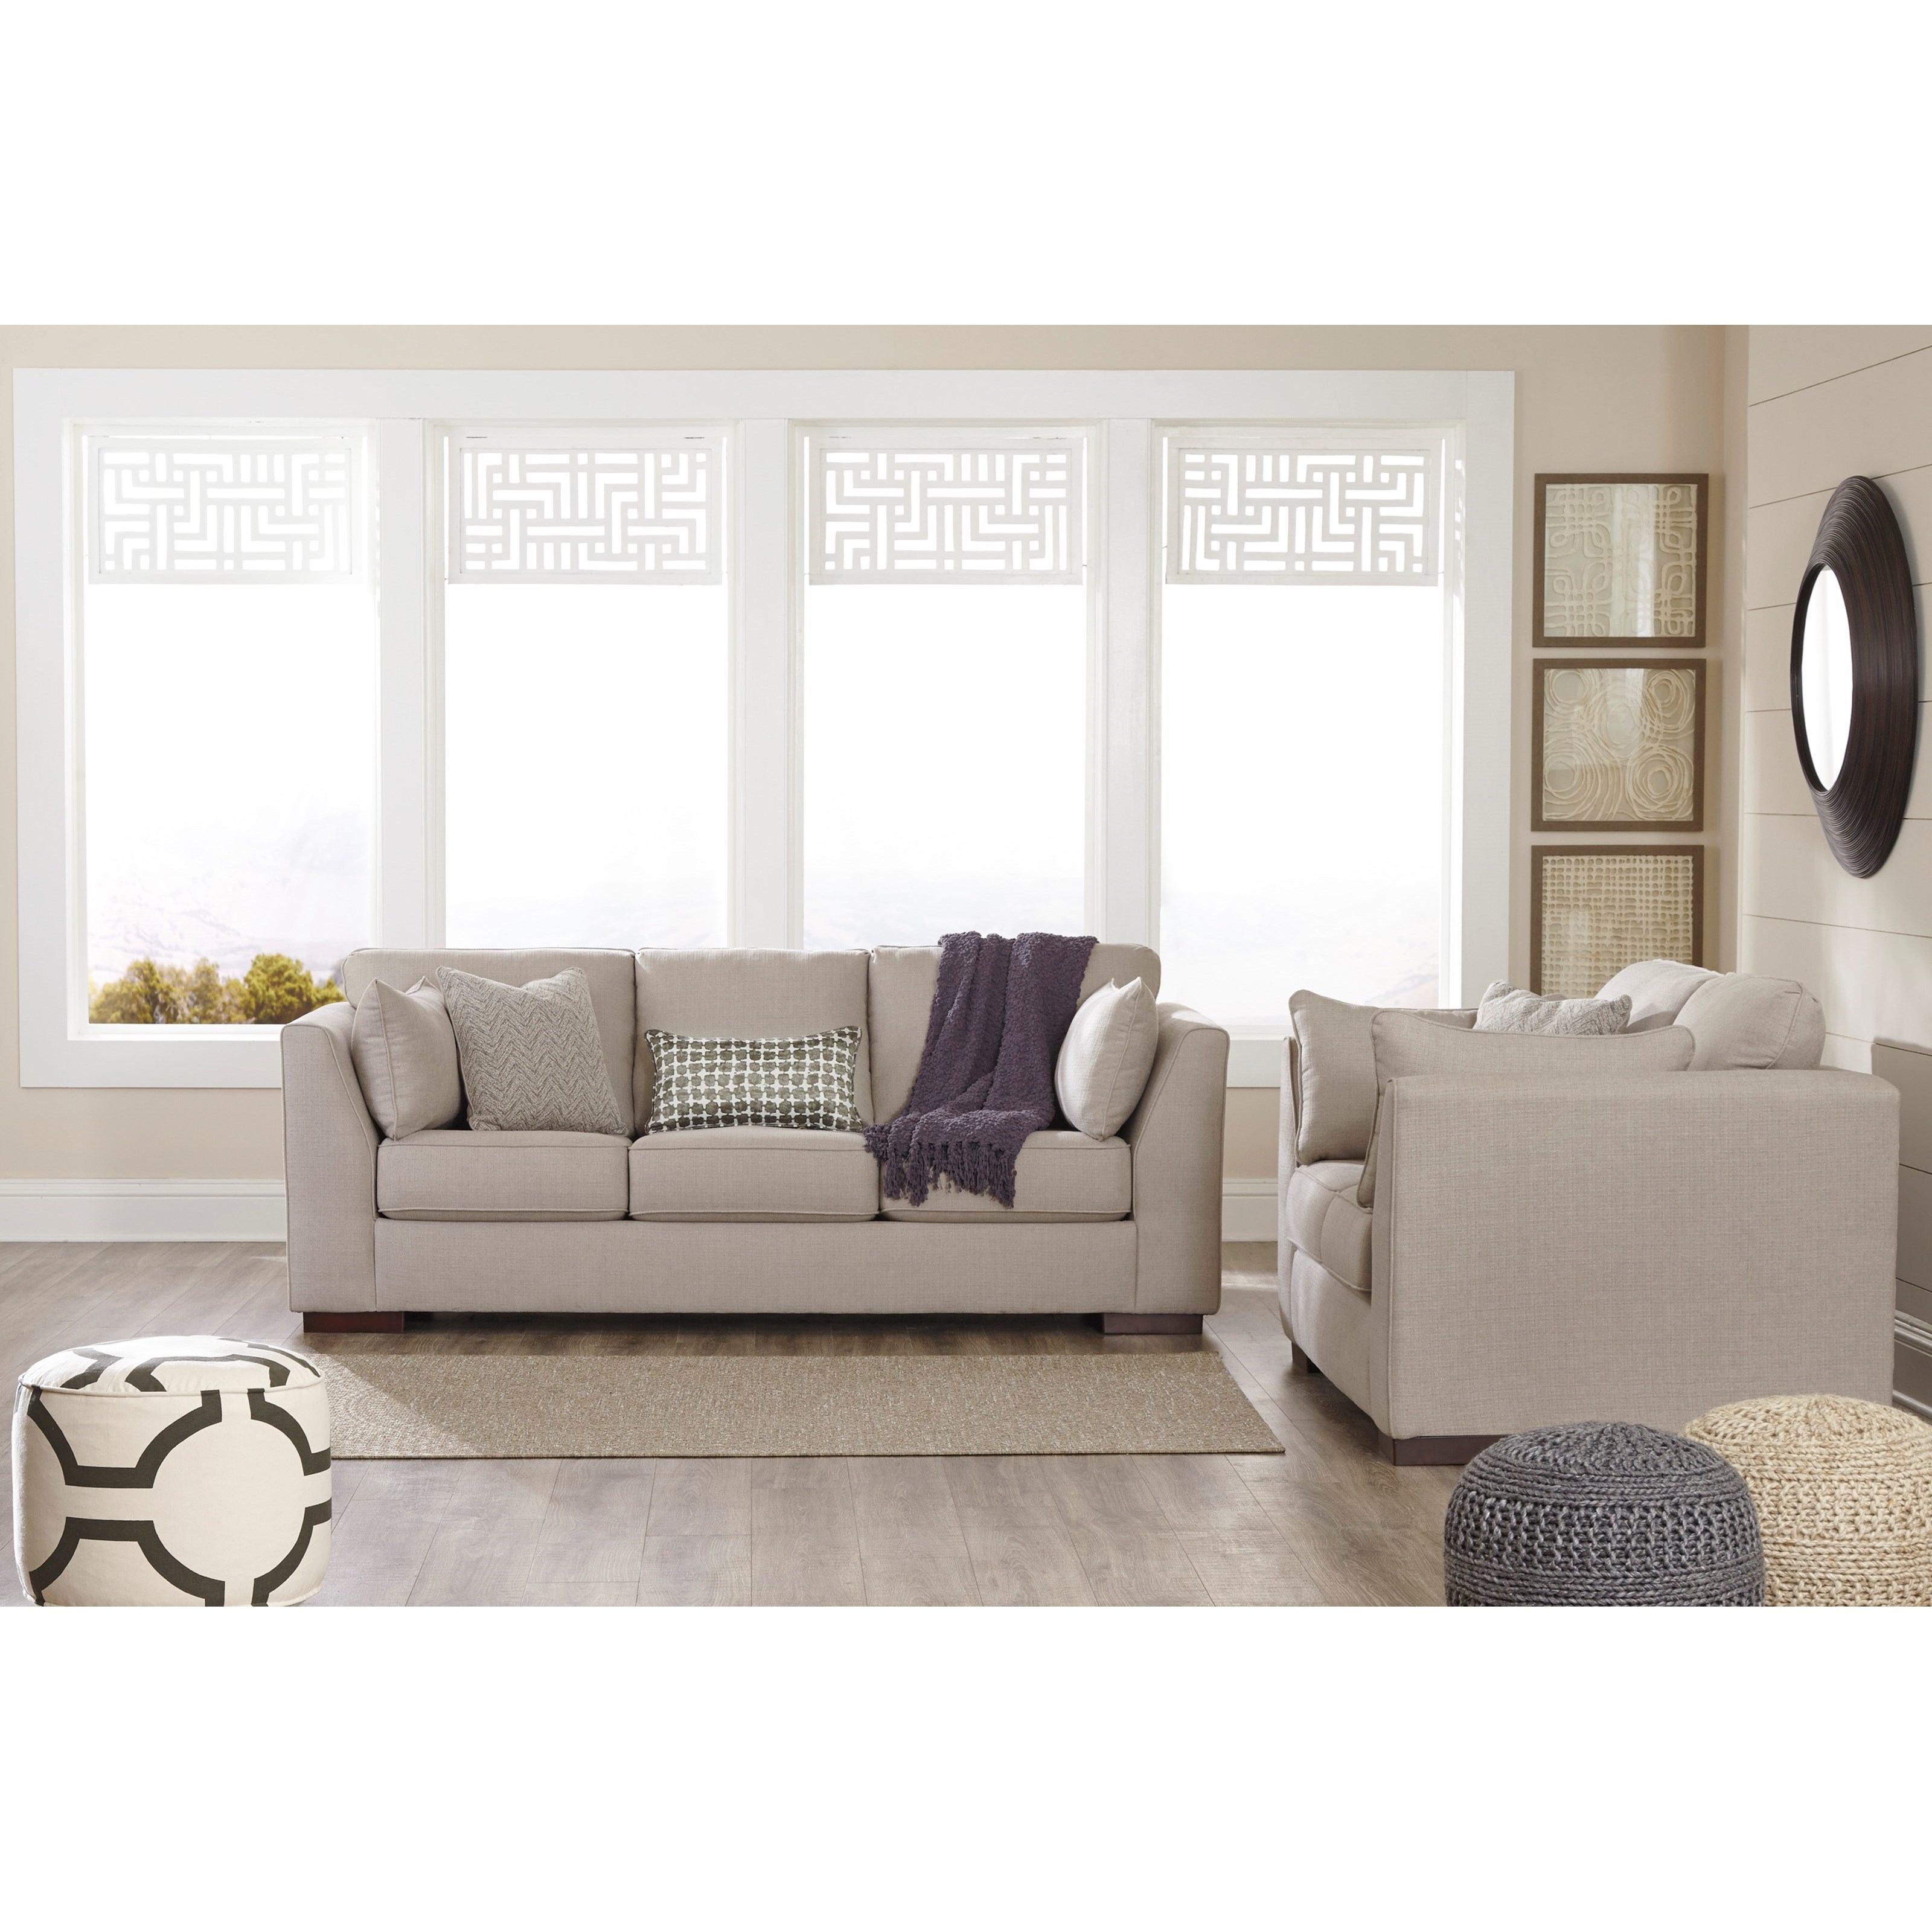 Benchcraft Lainier Stationary Living Room Group - Item Number: 54202 Living Room Group 1